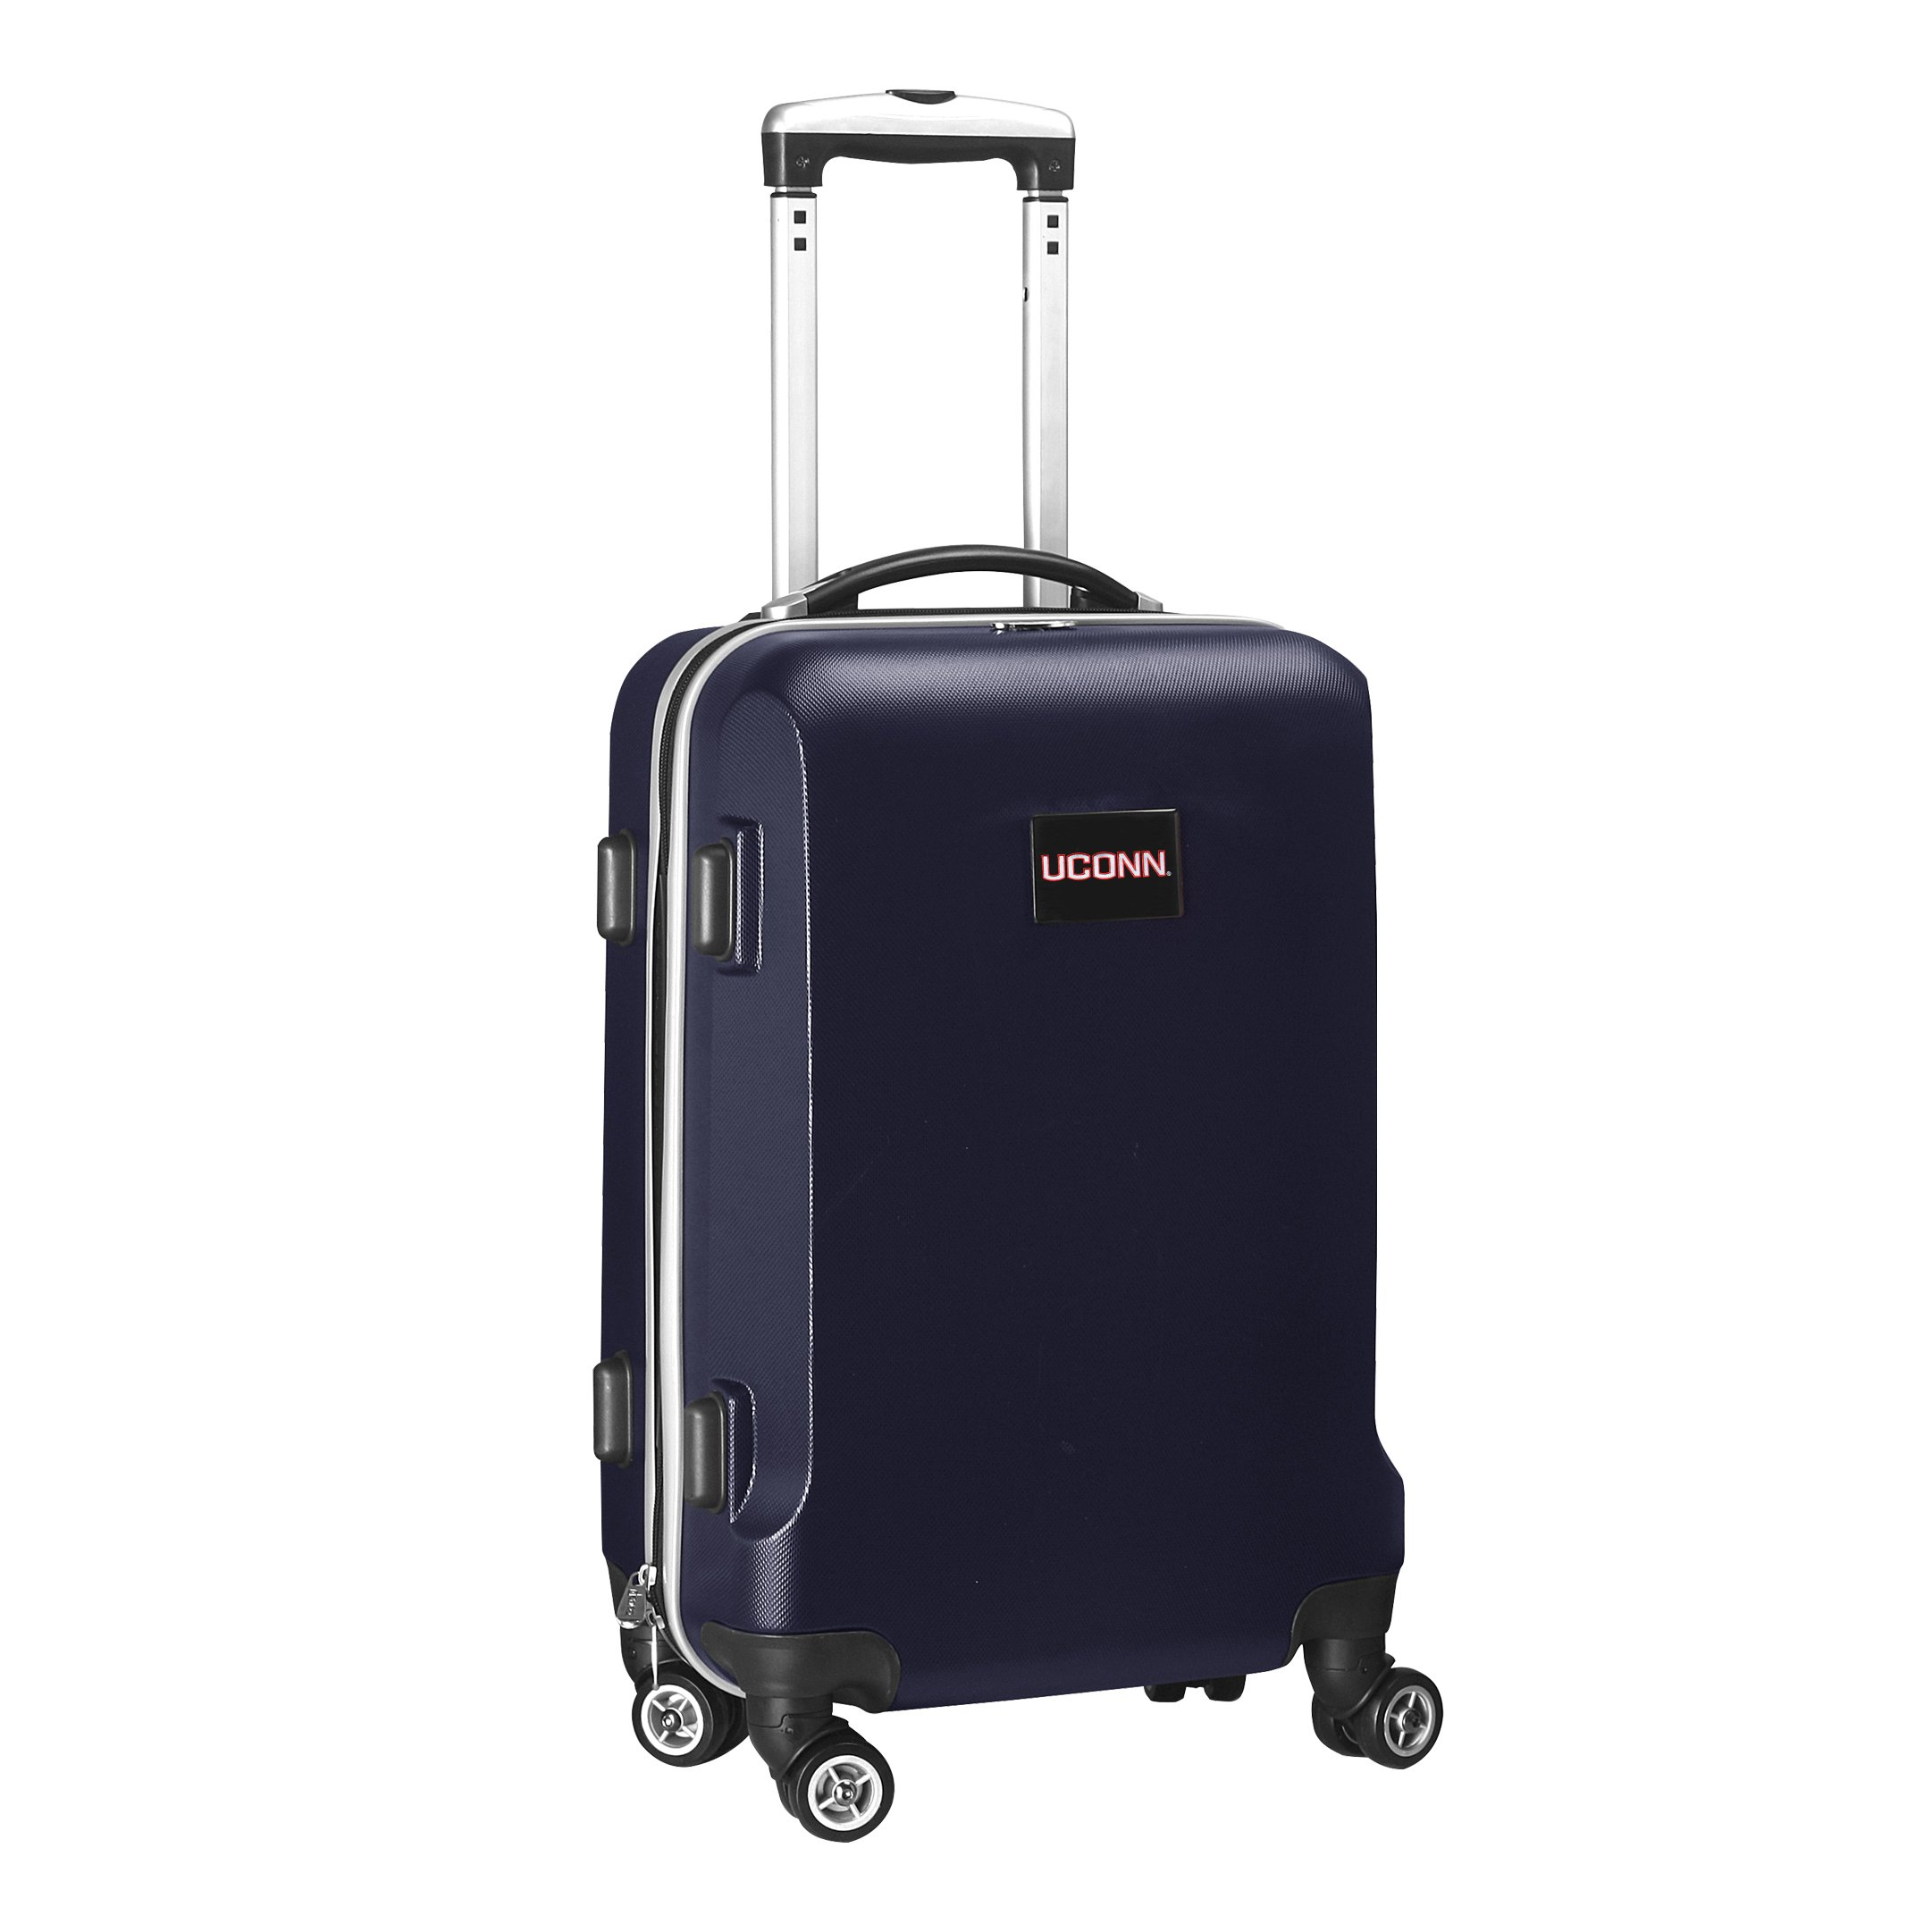 Denco NCAA Connecticut Huskies Carry-On Hardcase Luggage Spinner, Navy